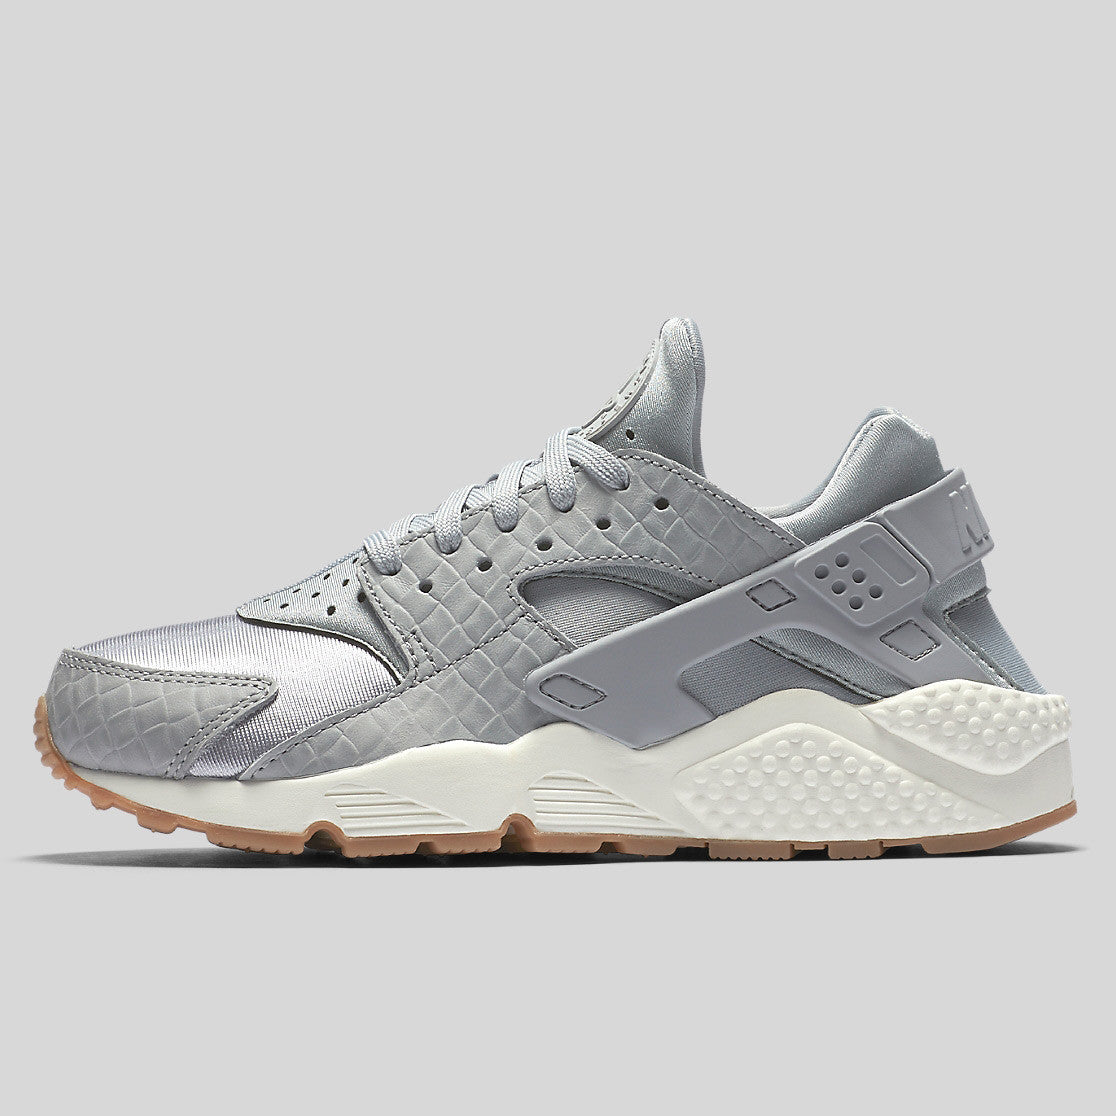 659f40e5edfe Nike Wmns Air Huarache Run PRM Wolf Grey Sail Gum Med Brown (683818-012